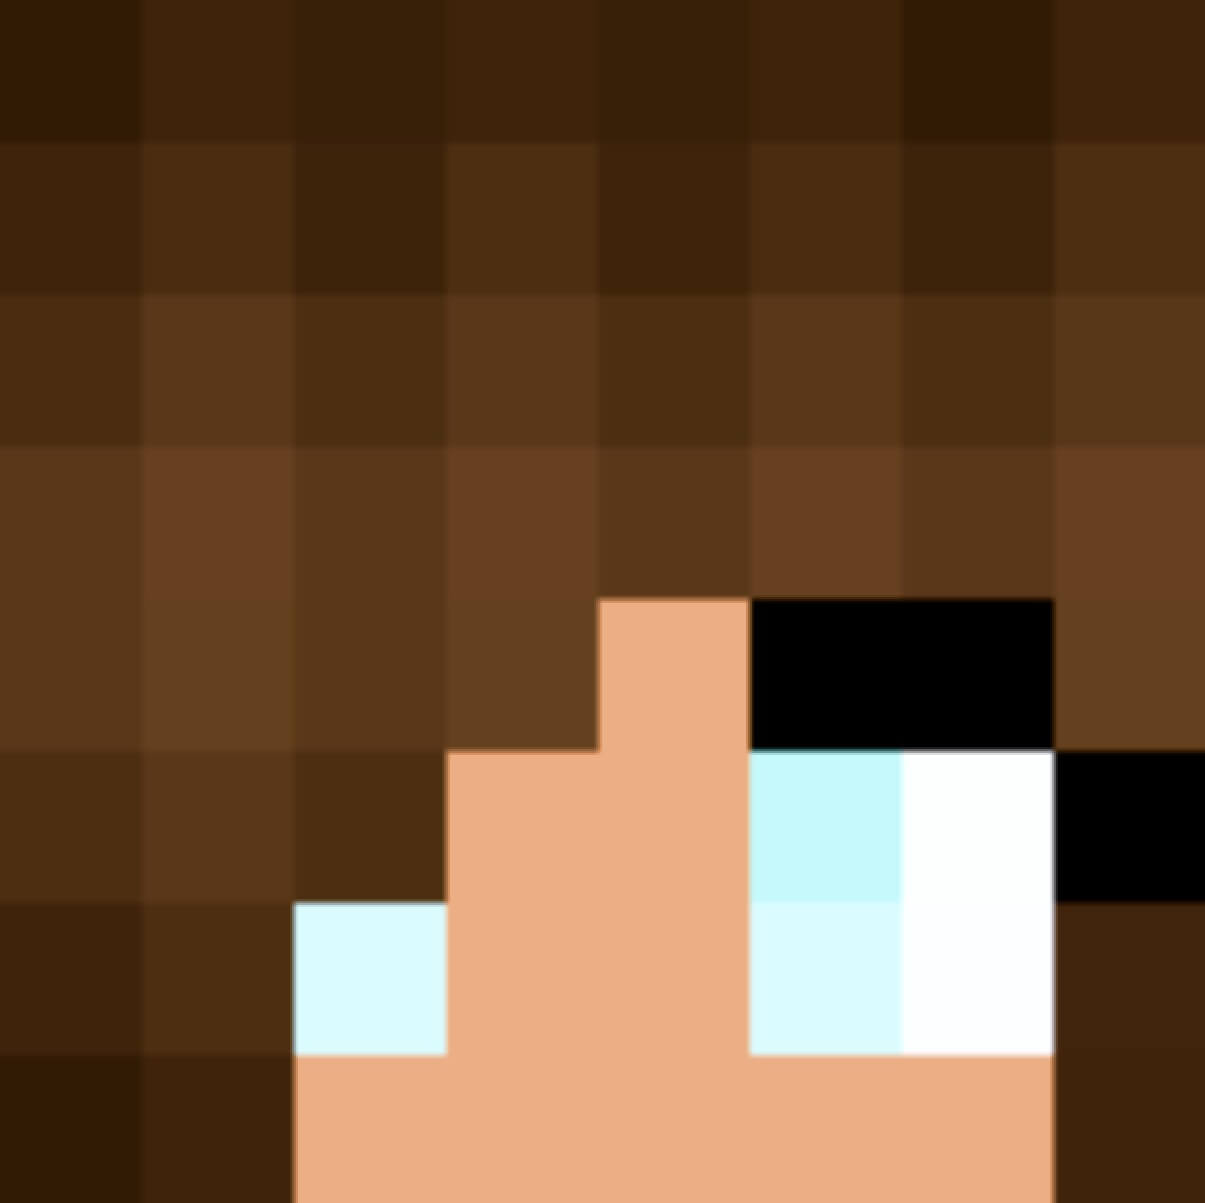 My Girlfriend's Minecraft Skin Blank Template - Imgflip Pertaining To Minecraft Blank Skin Template